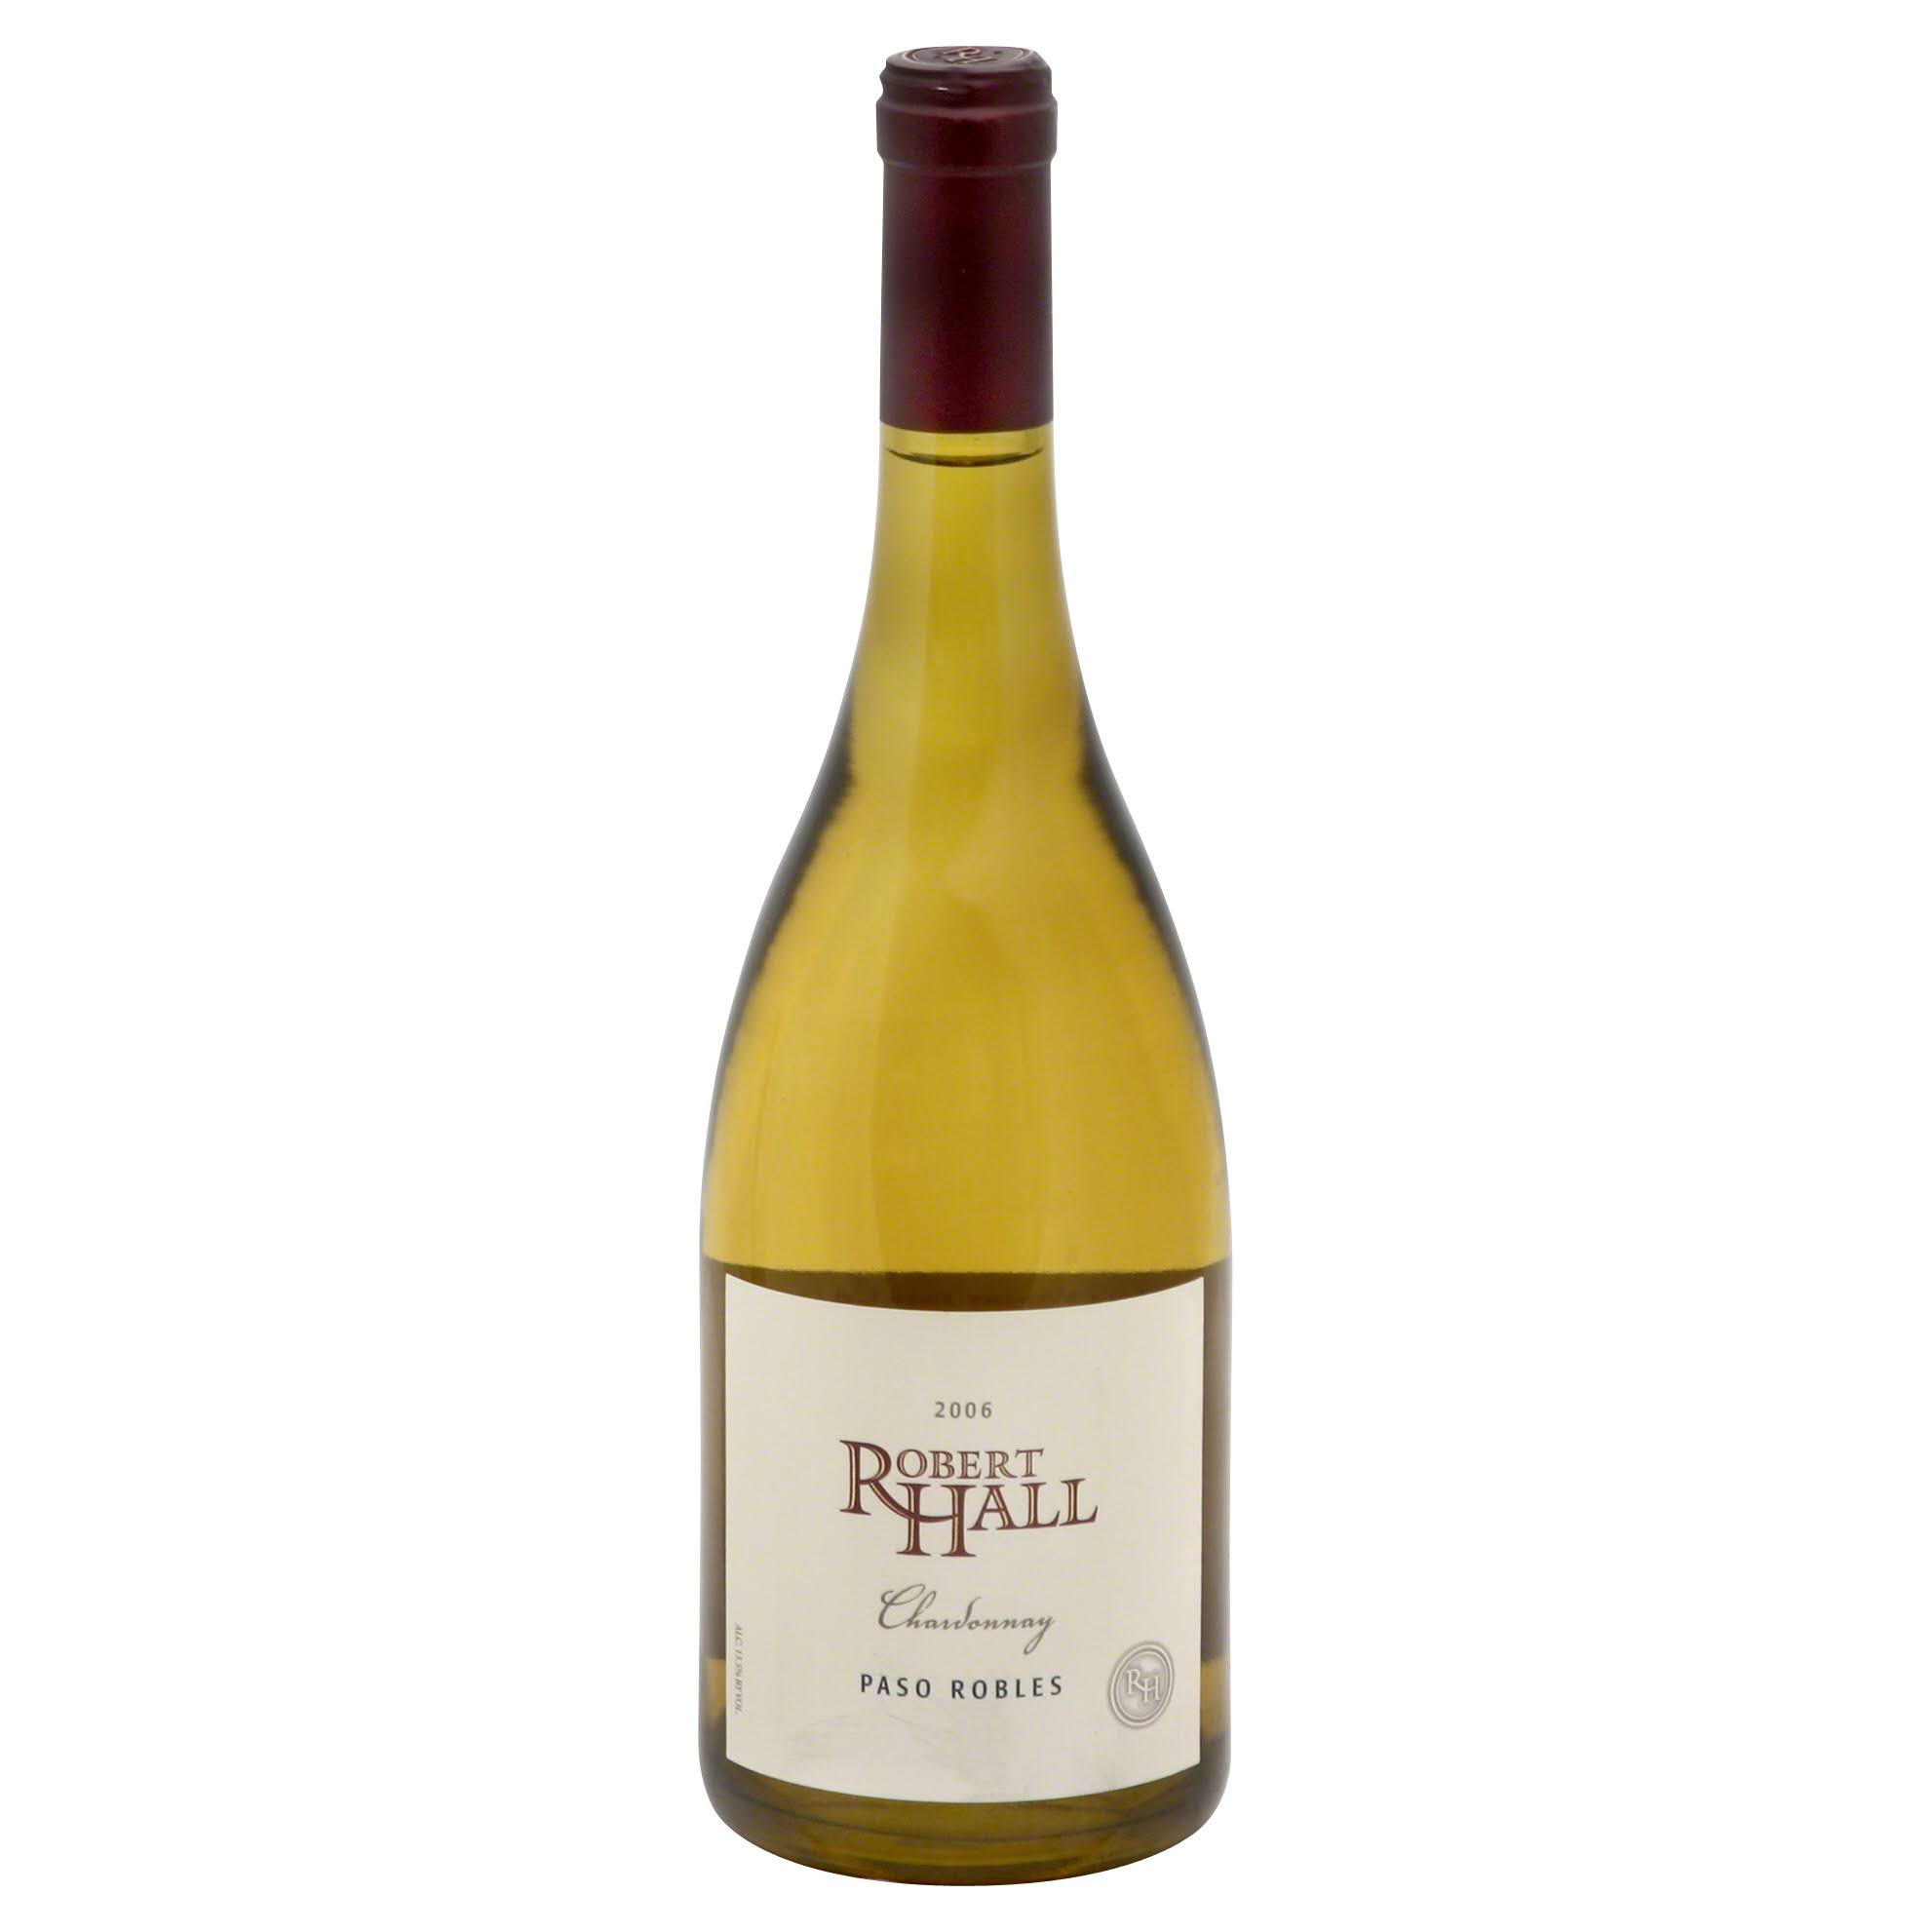 Robert Hall Chardonnay, Paso Robles, 2006 - 750 ml